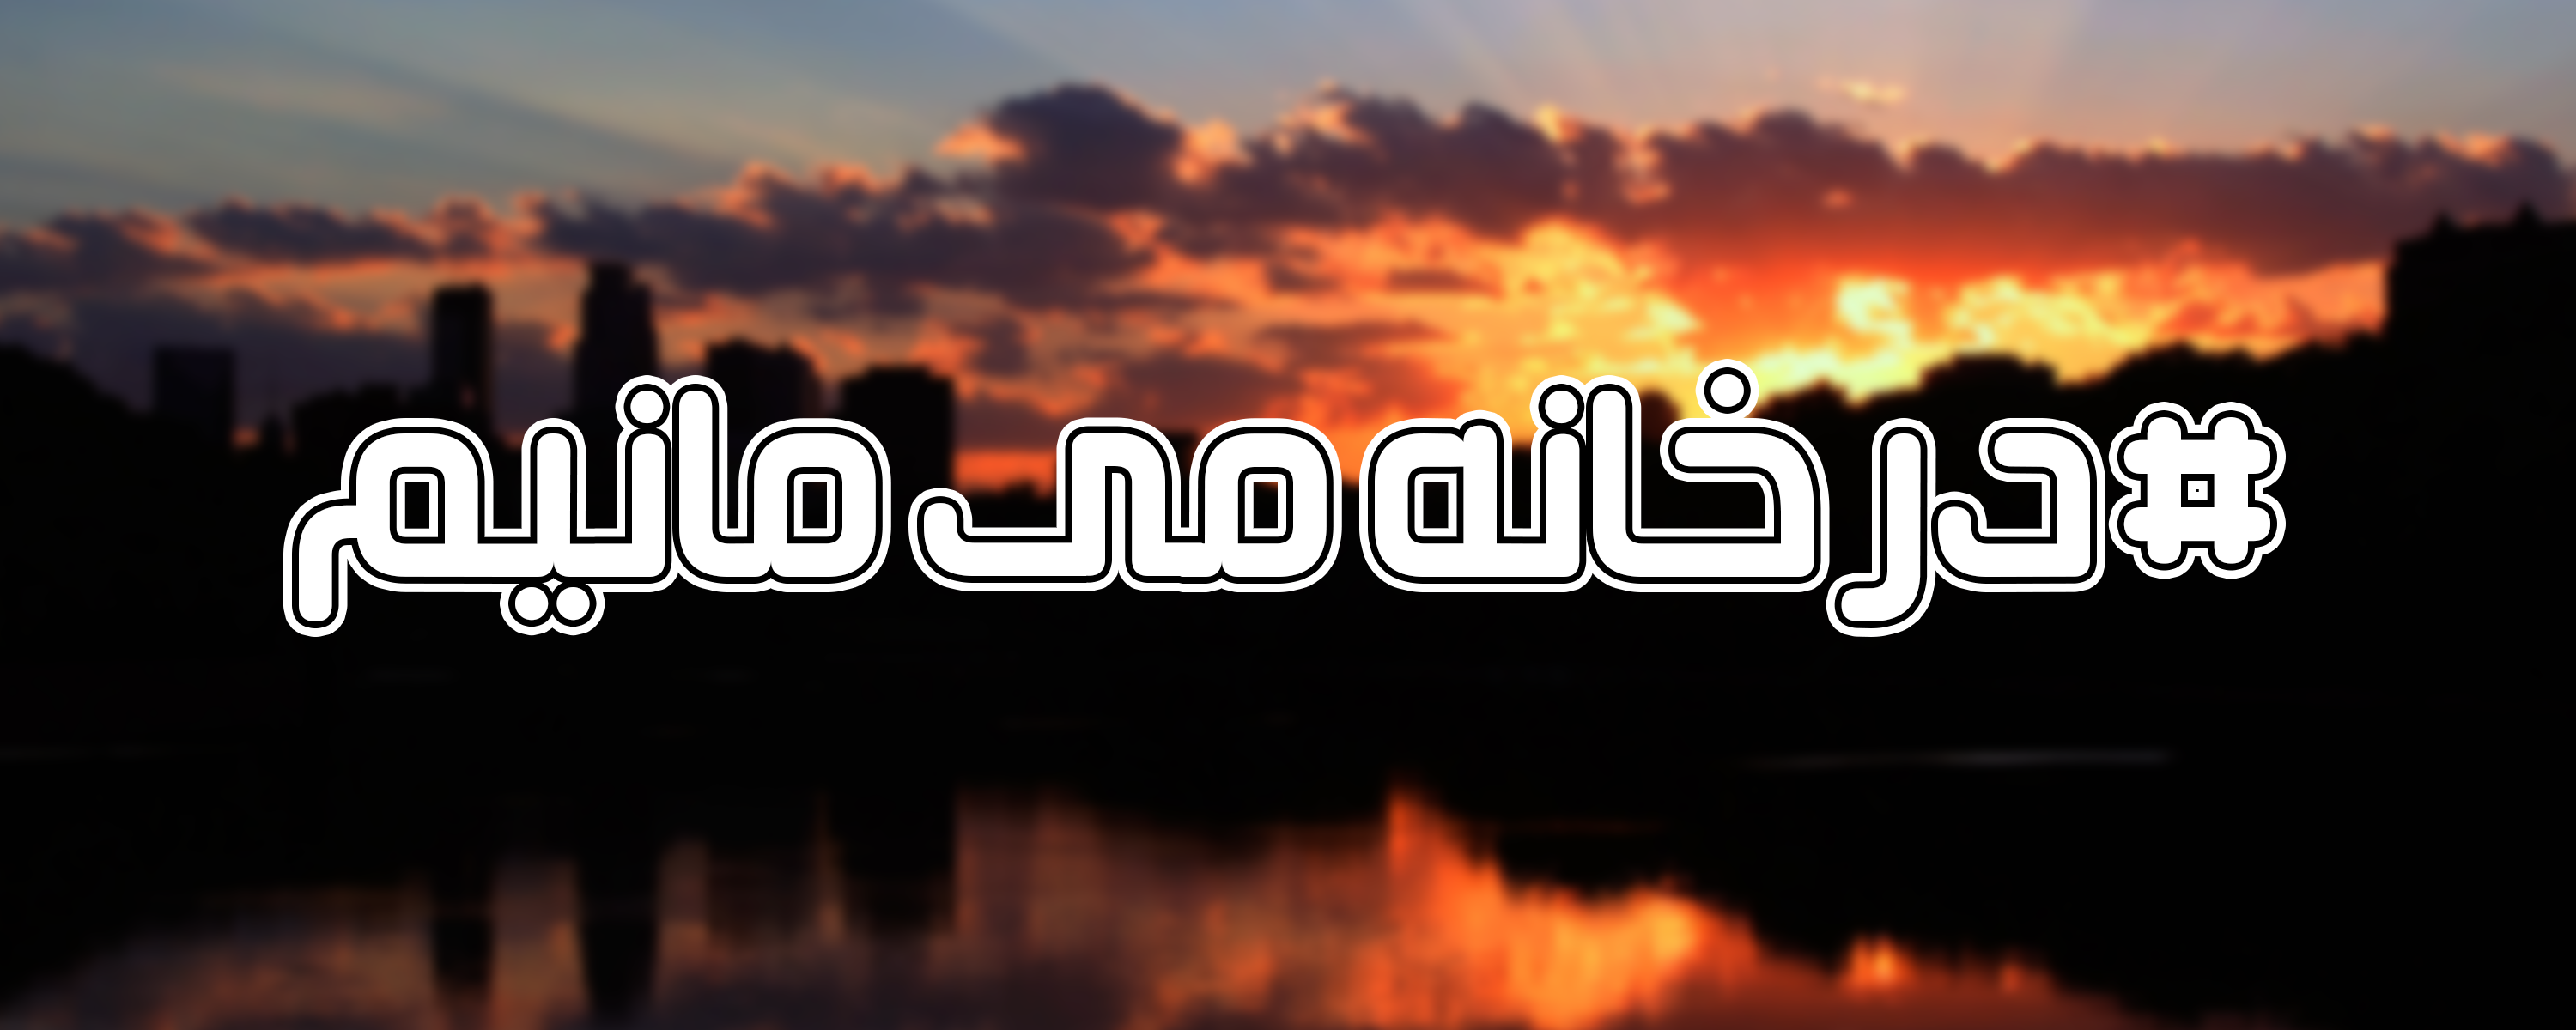 fd11_امام.png